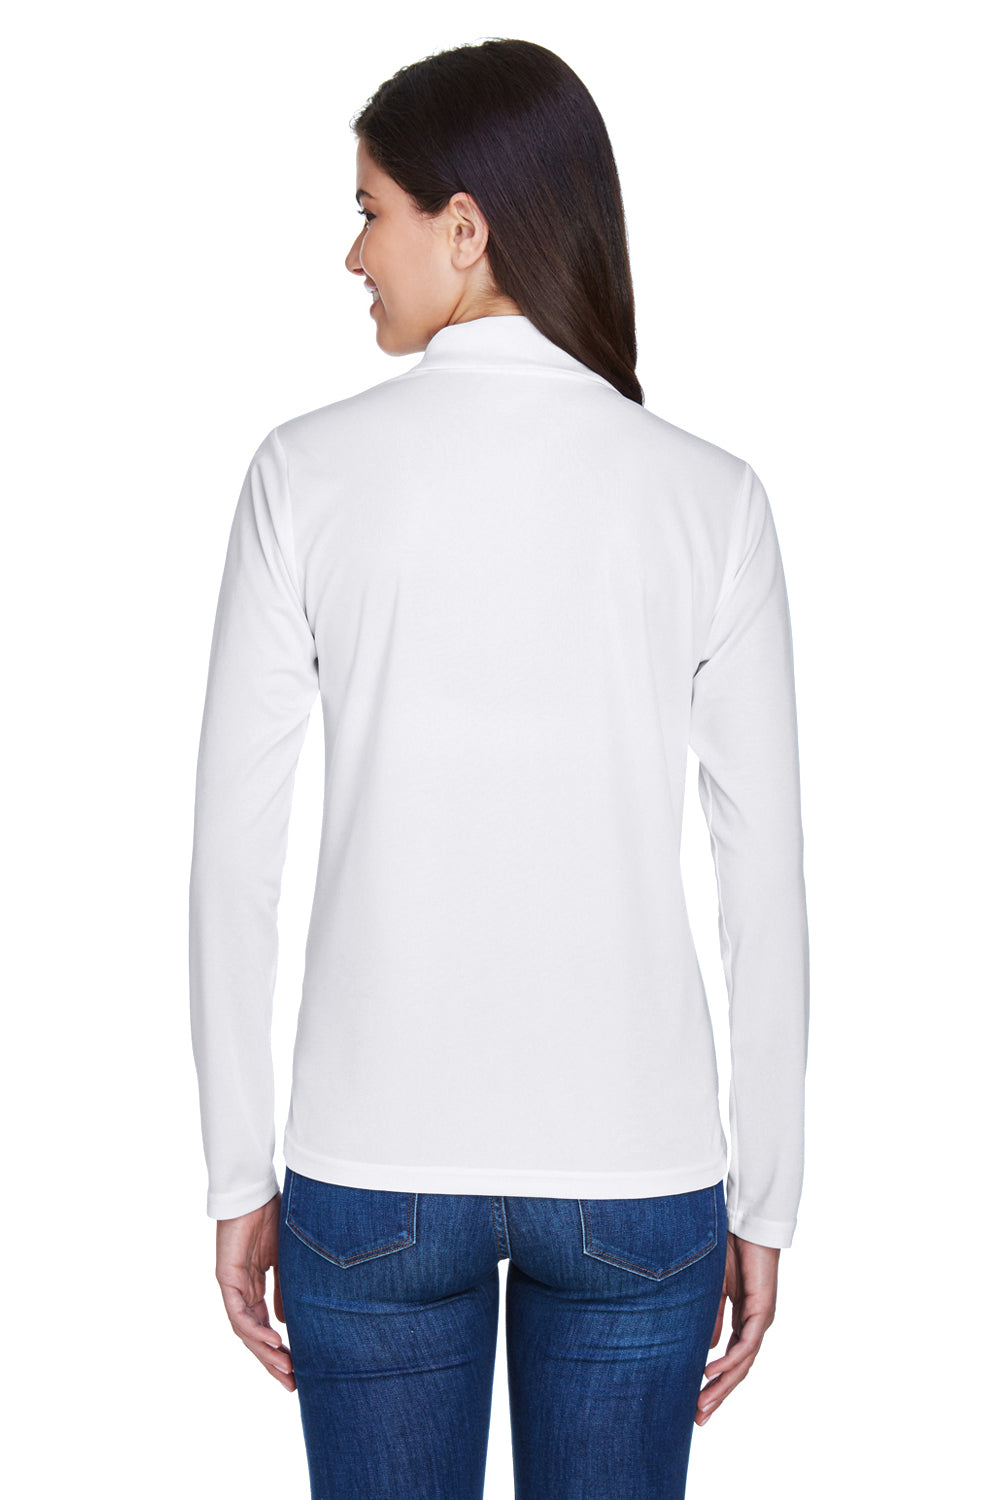 Core 365 78192 Womens Pinnacle Performance Moisture Wicking Long Sleeve Polo Shirt White Back